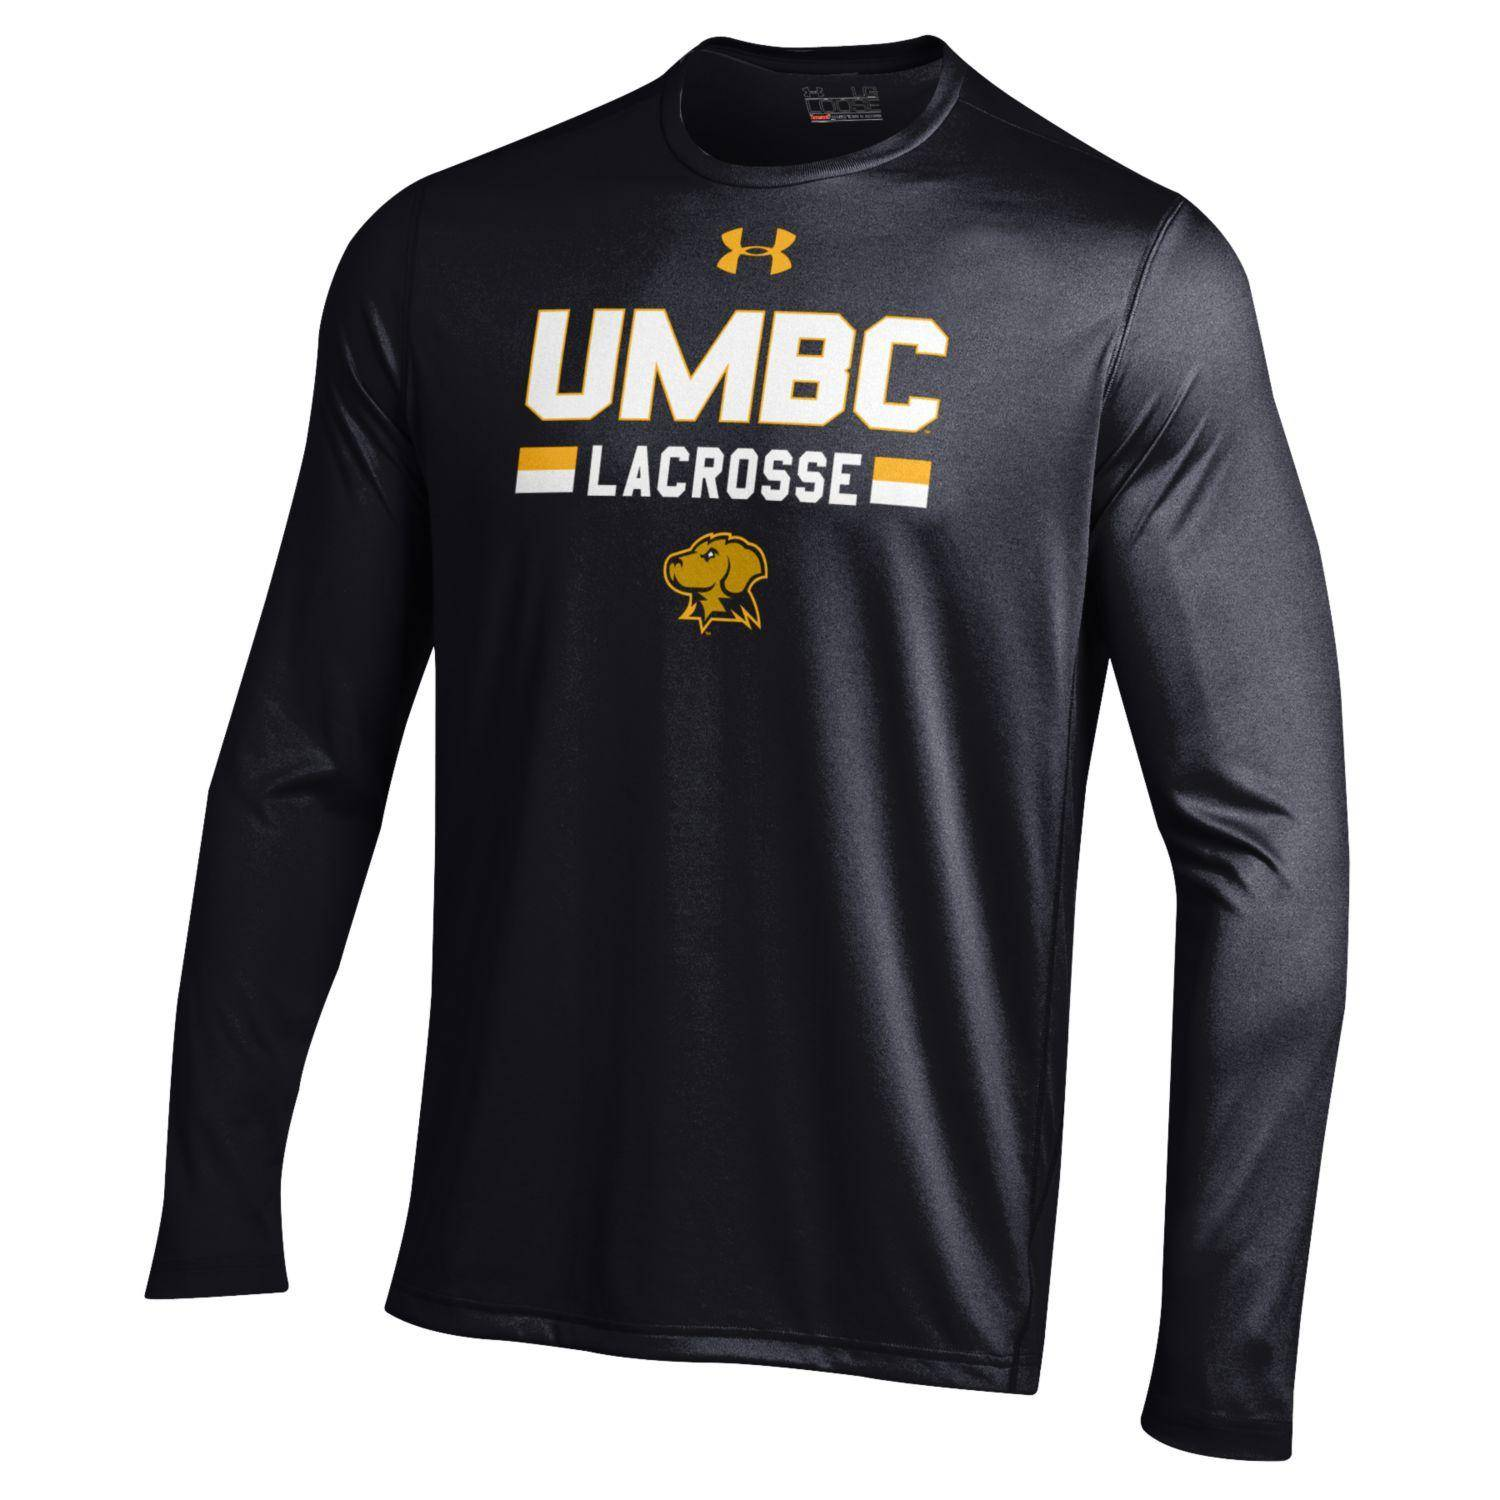 Image For LACROSSE UNDER ARMOUR UMBC LONG SLEEVE TECH